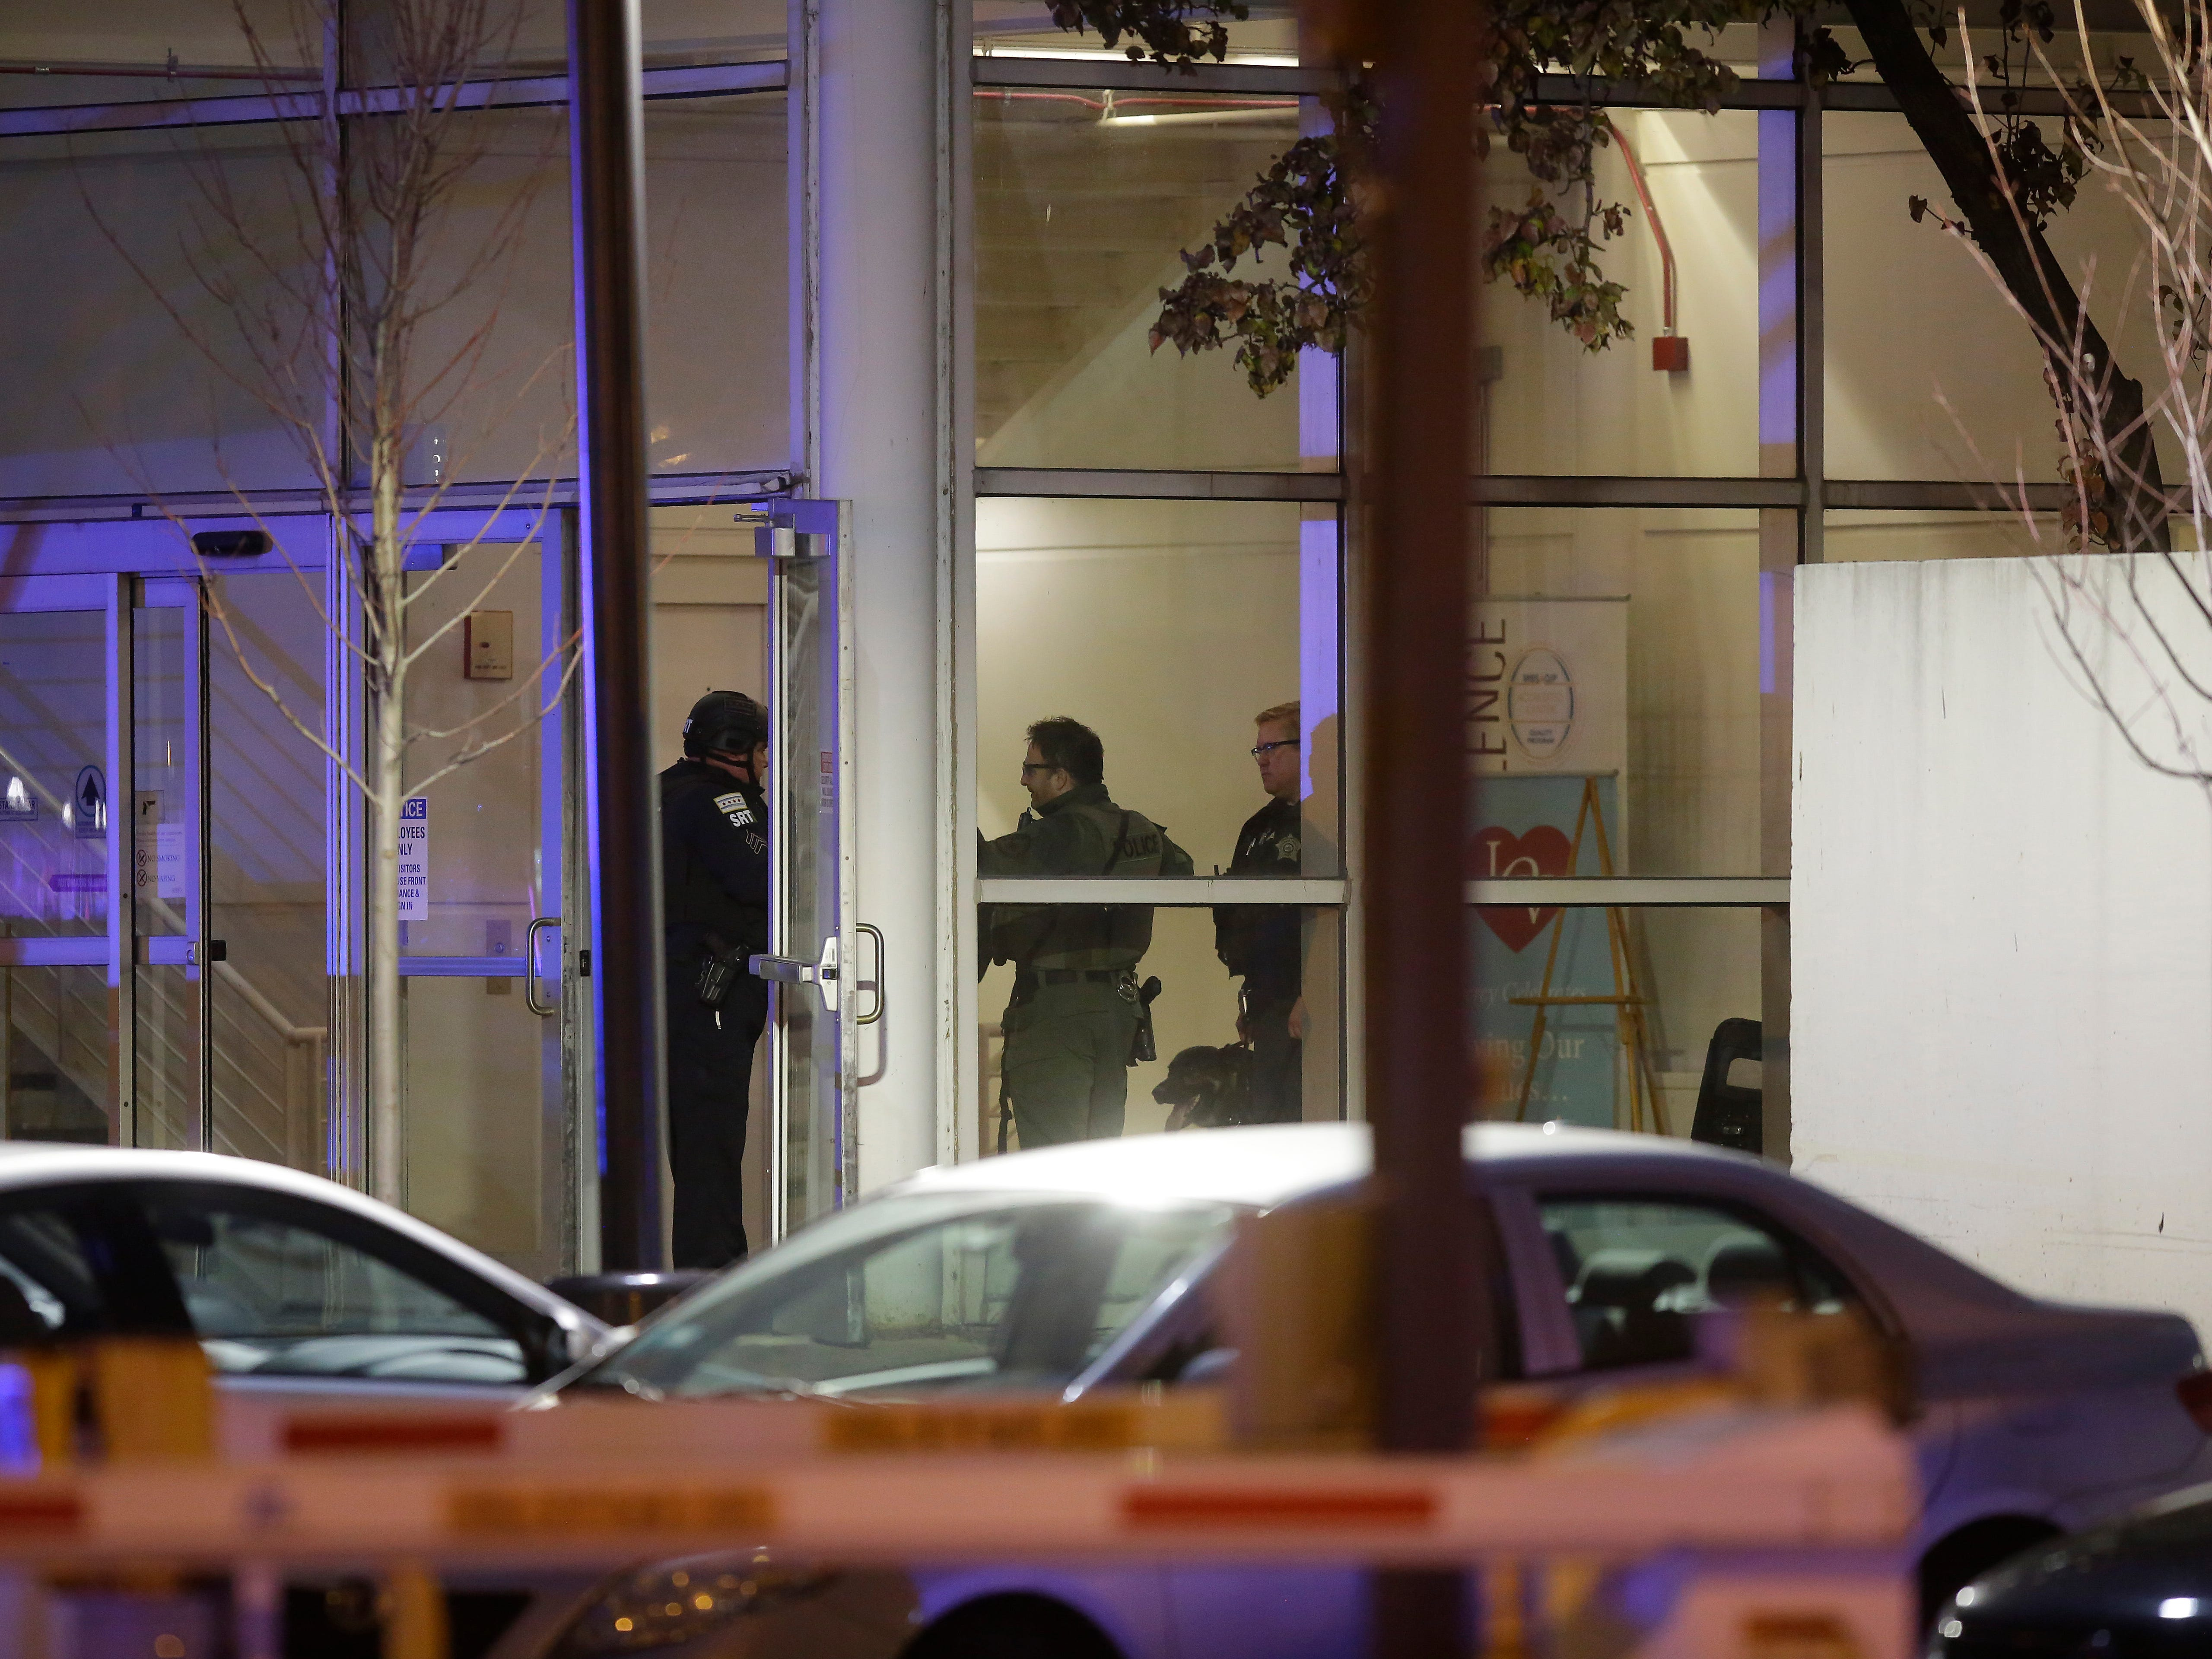 Police officers stand at one of the entrances to Mercy Hospital after a gunman shot multiple people on Nov. 19, 2018 in Chicago.